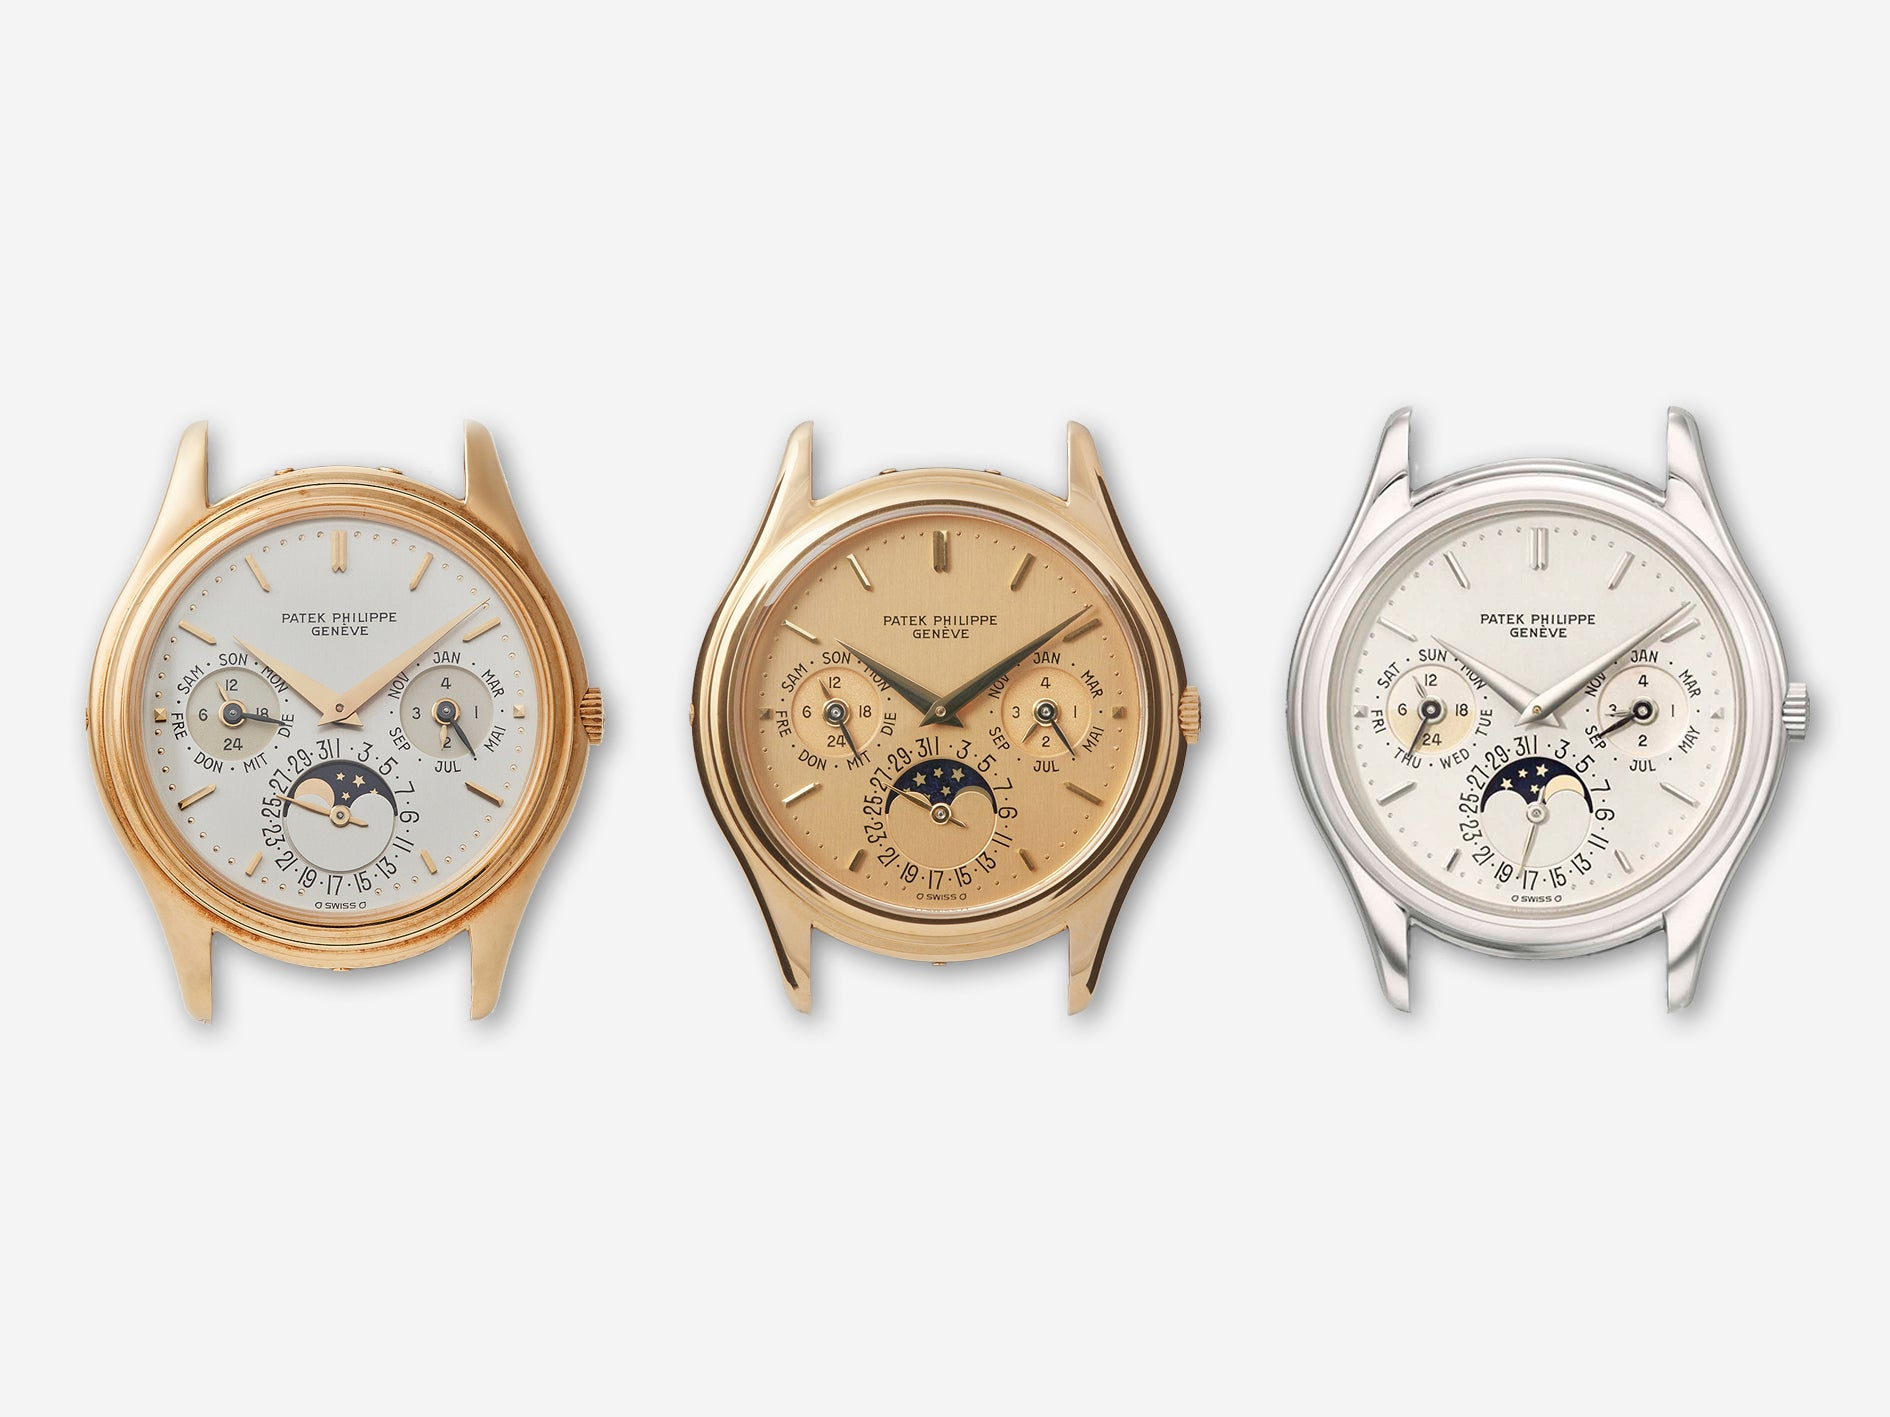 Three Patek Philippe 3940 first series with yellow gold and white gold cases with champagne and opaline dials